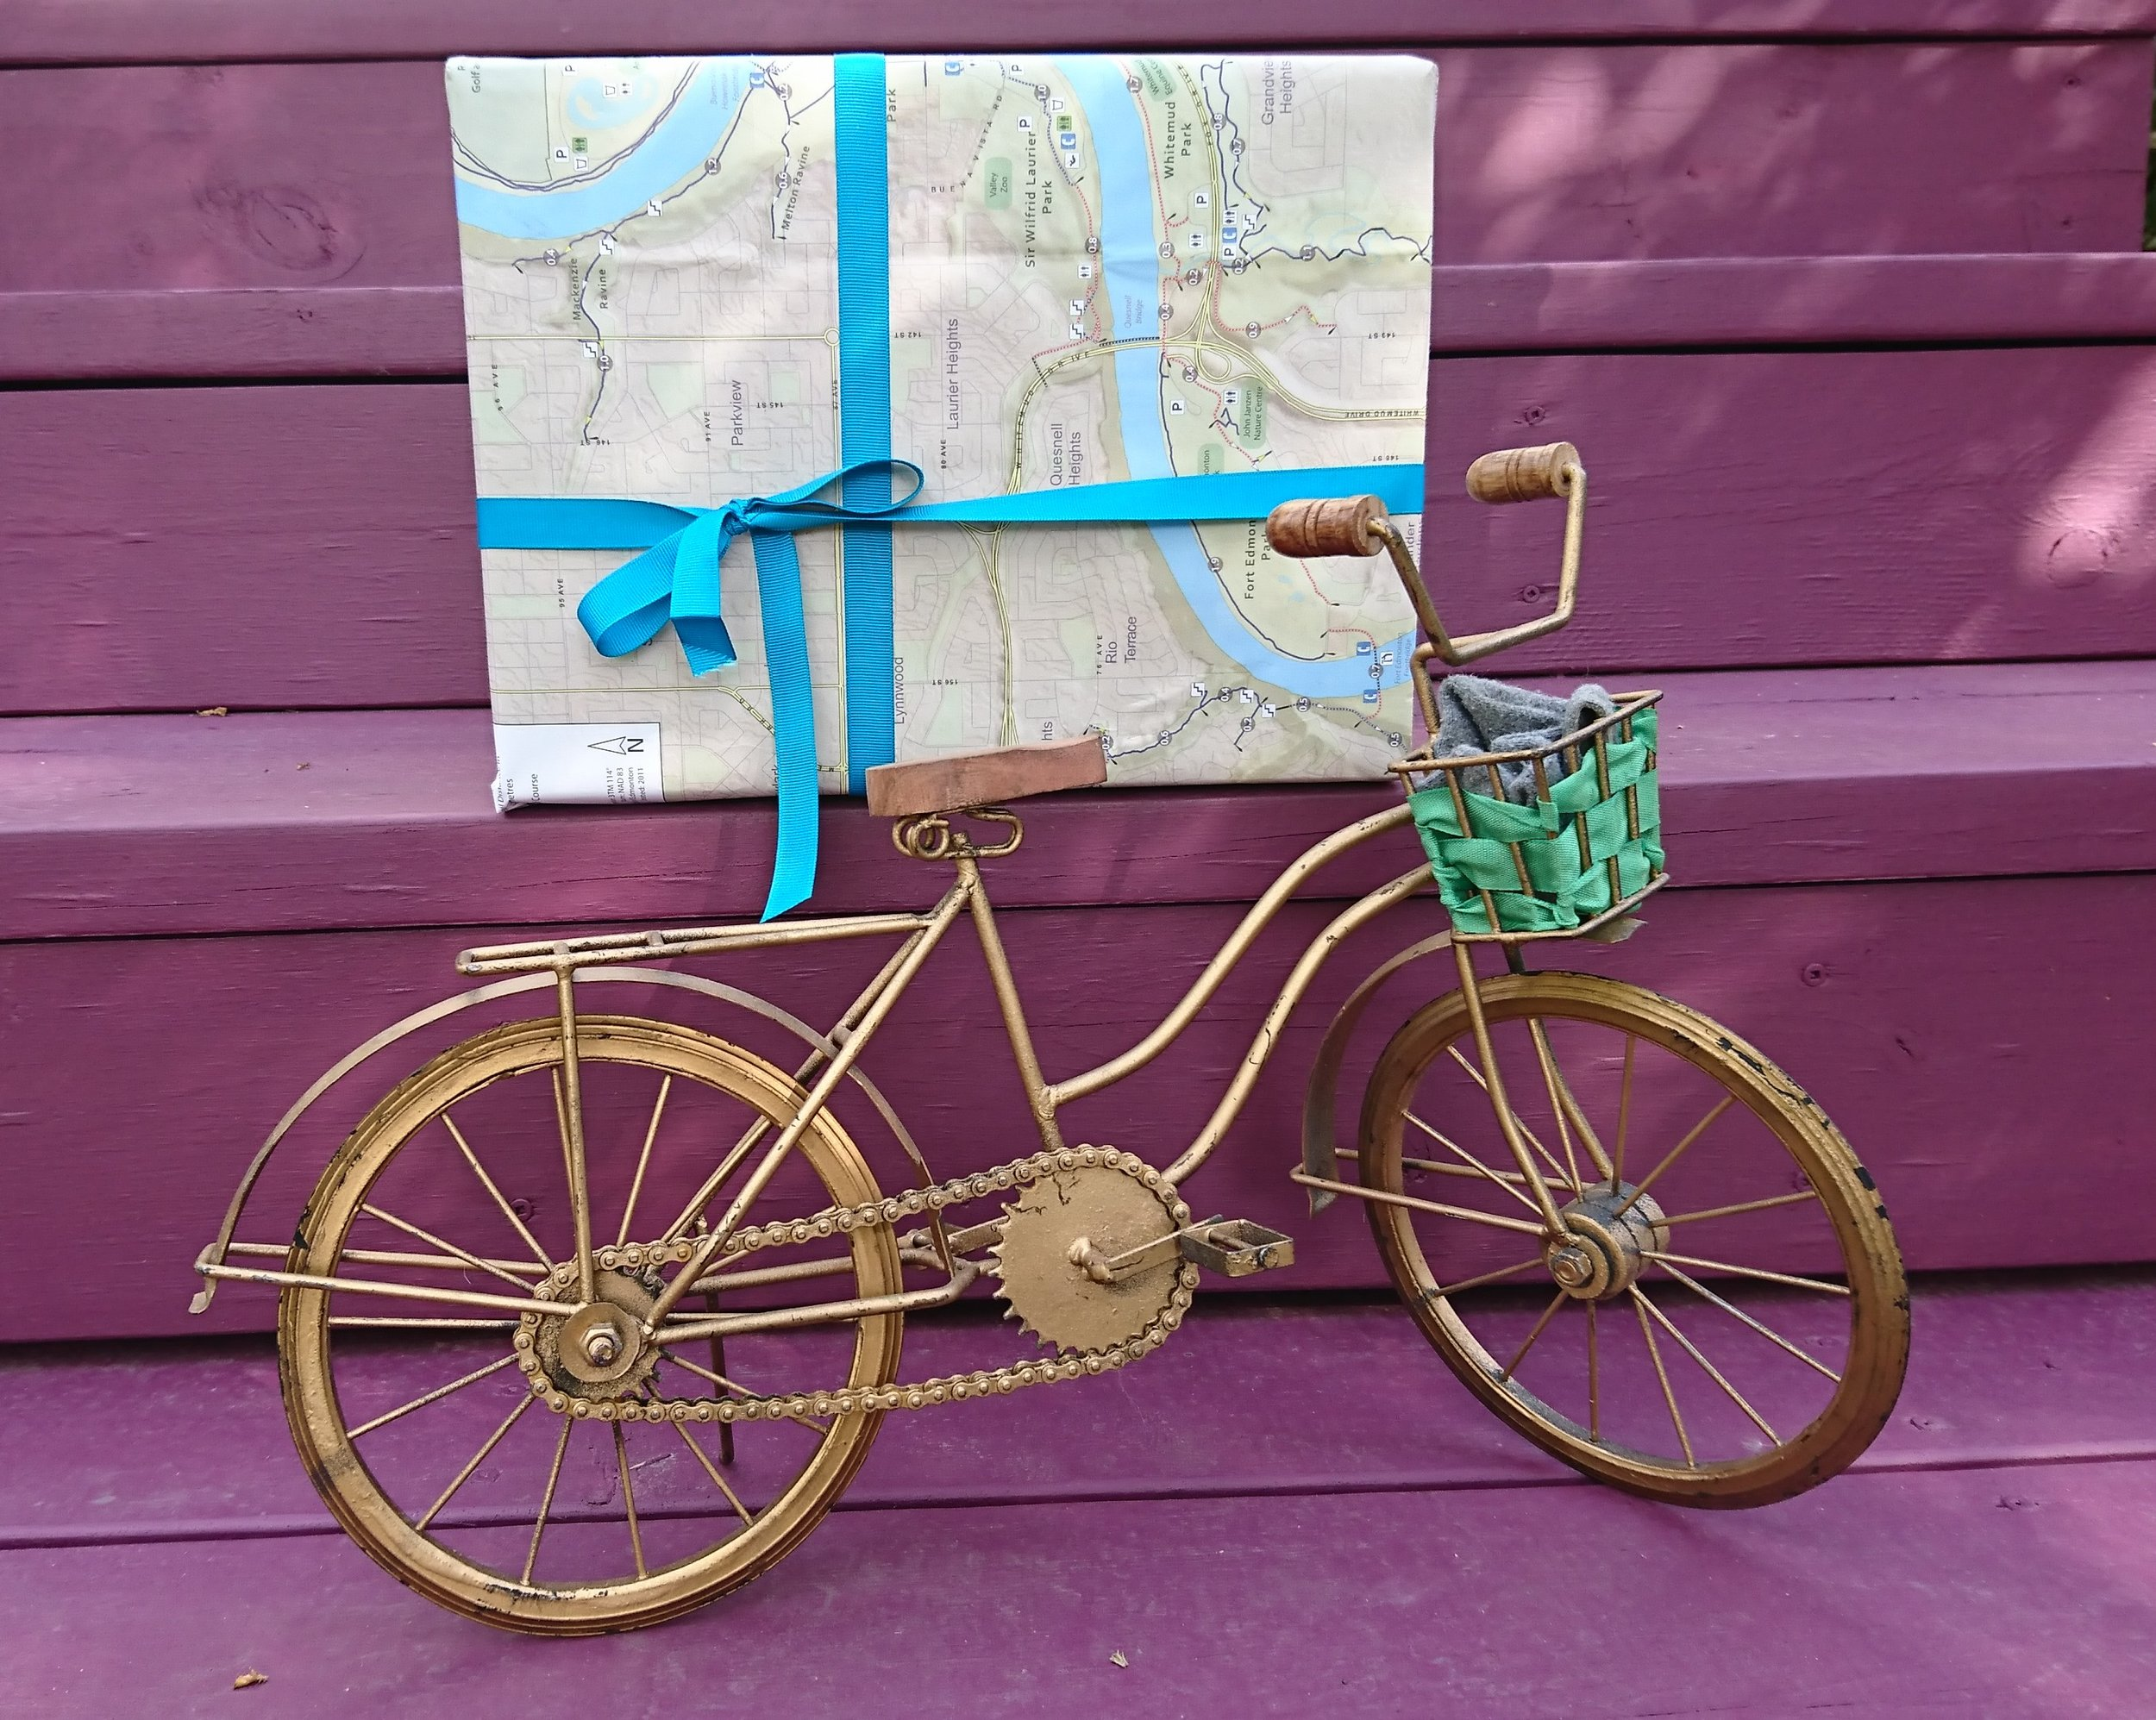 Bike-and-map-present.jpg